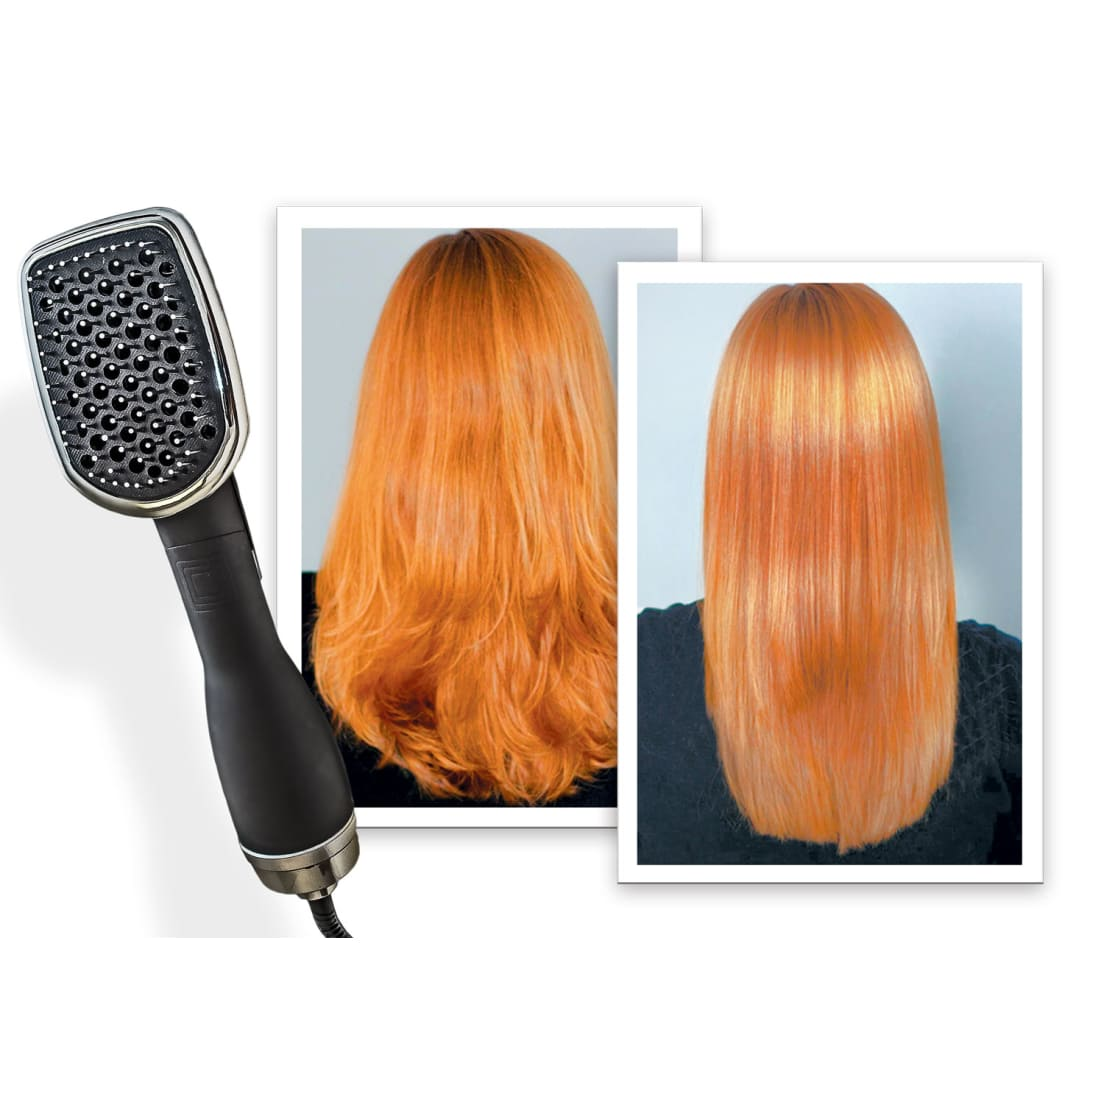 Procabello 2 In 1 Blower Brush Hair Dryer And Styler The Wet Tourmaline Blowout Small